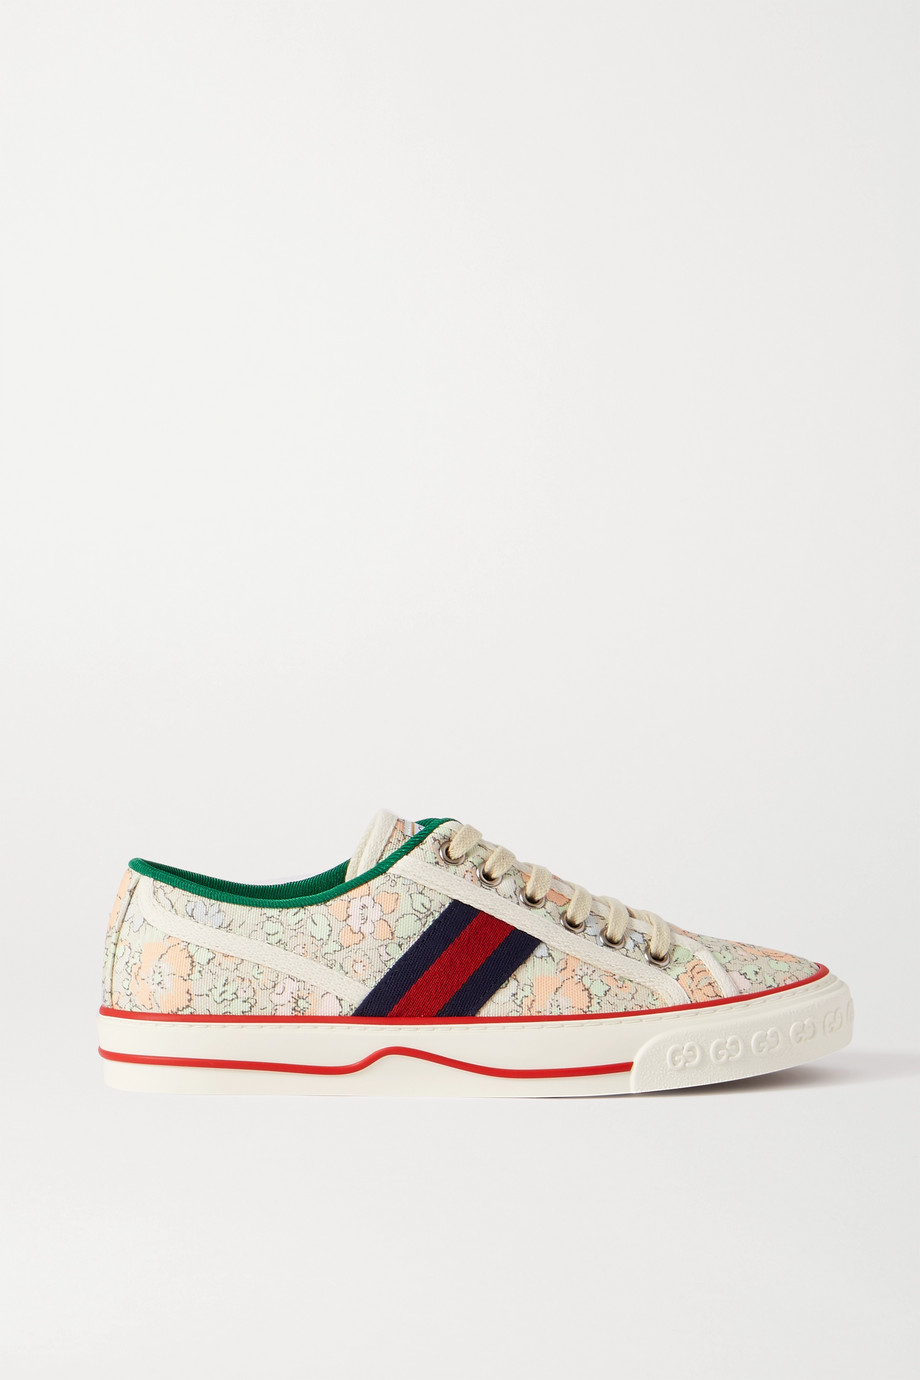 Gucci Tennis 1977 floral-print canvas sneakers